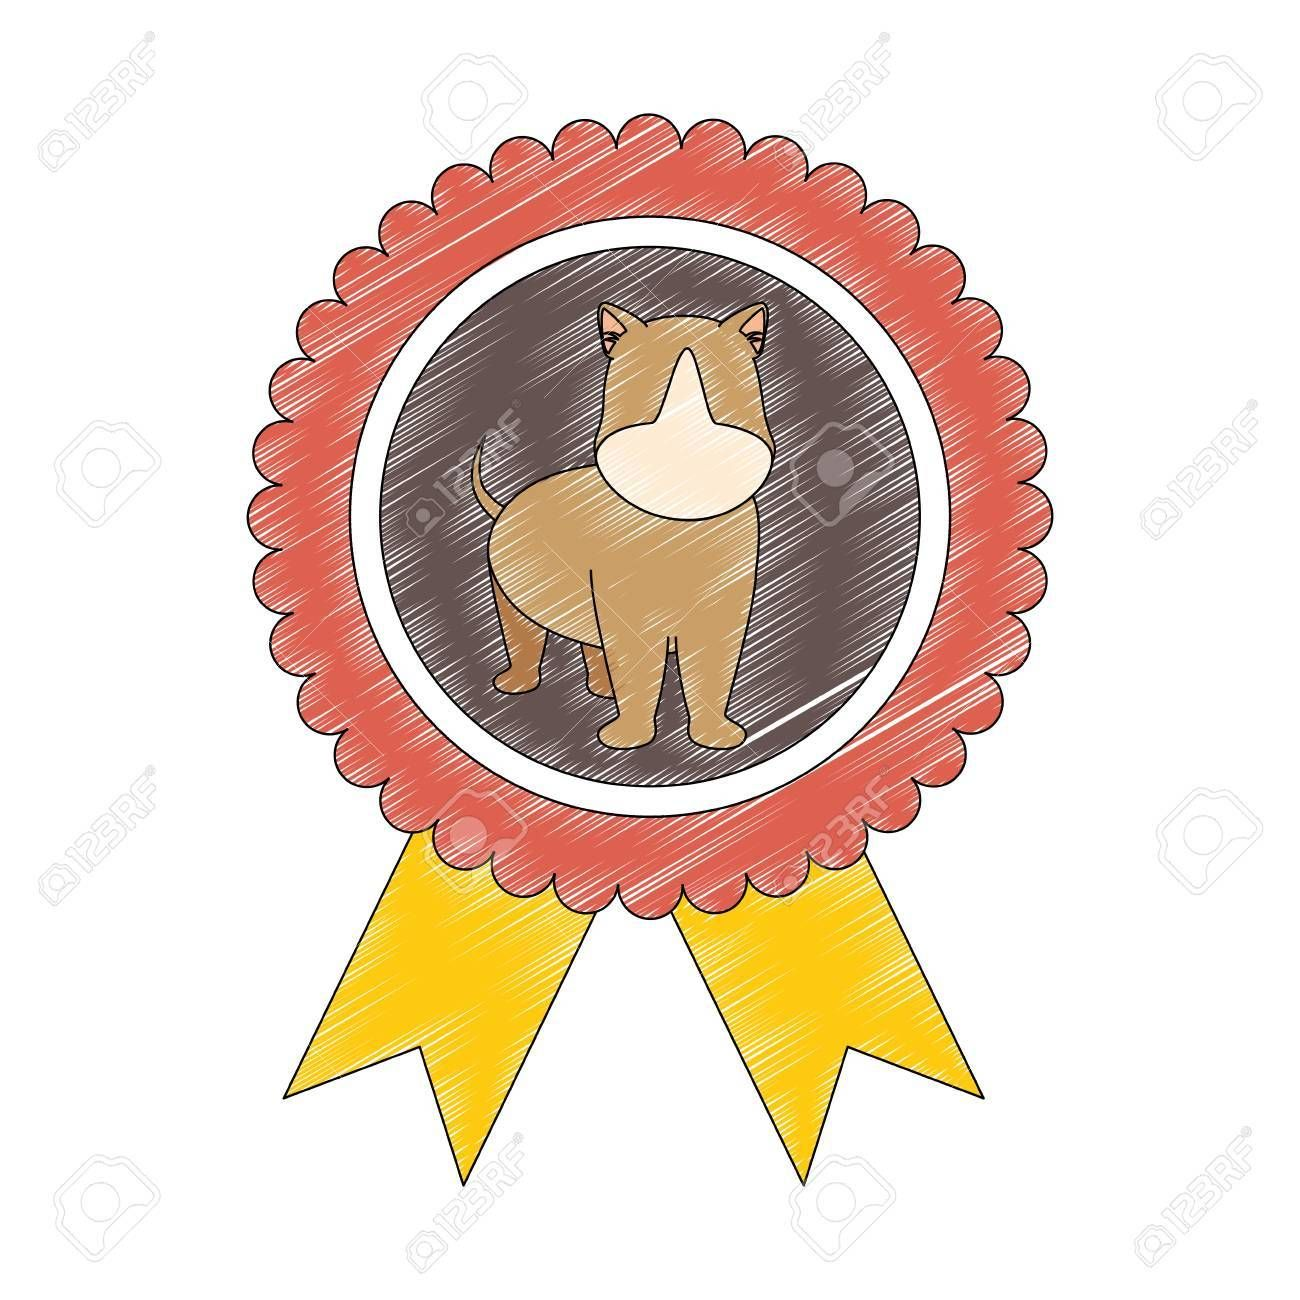 medal with dog icon over white background colorful design vector illustration